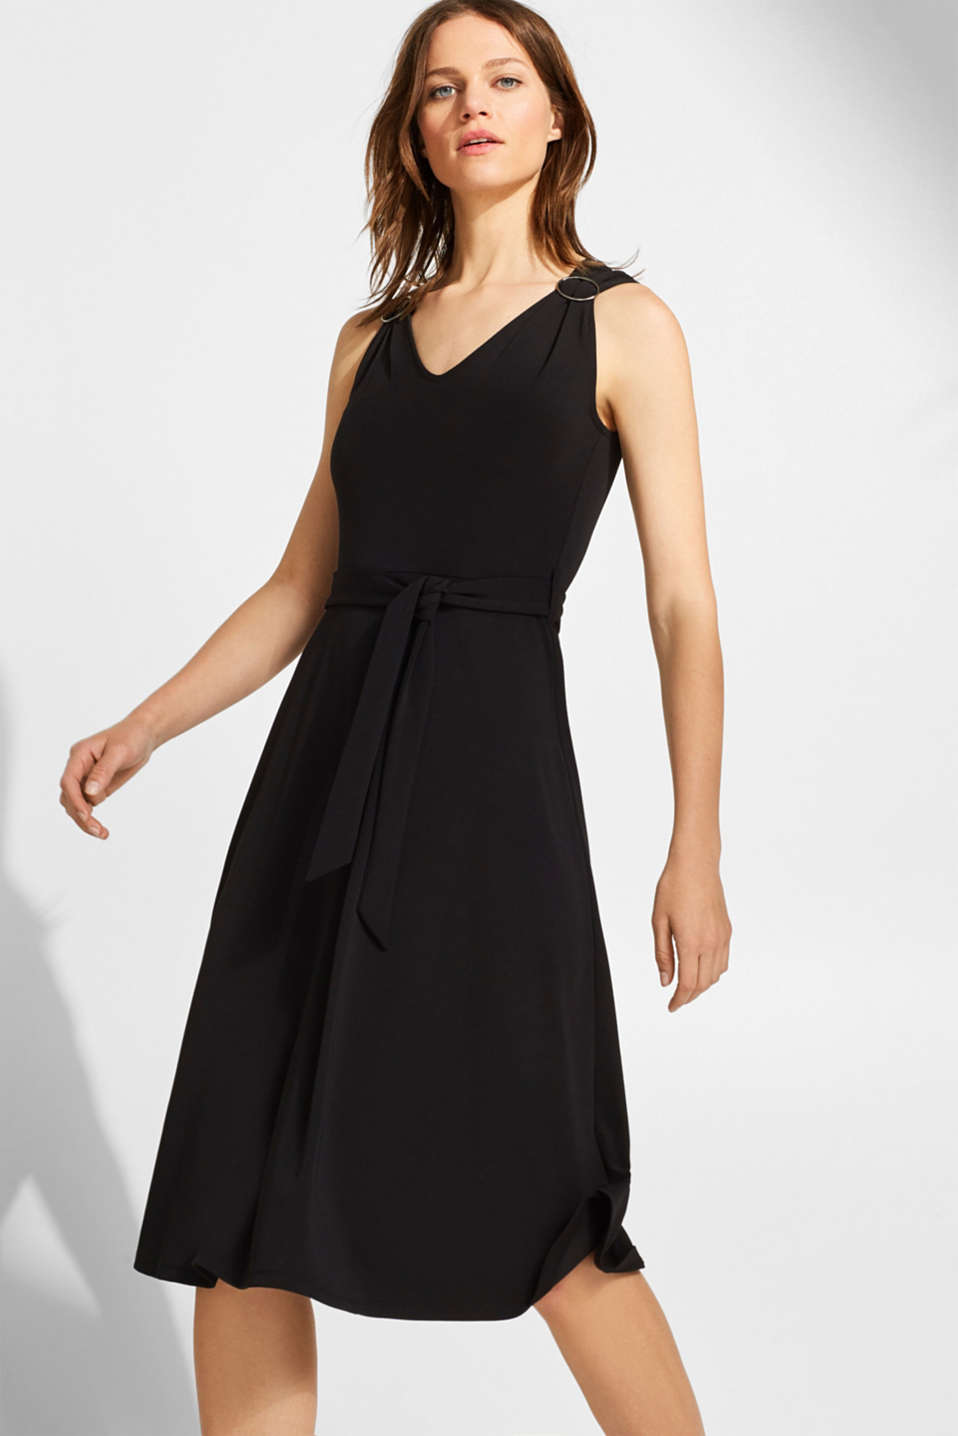 Esprit - Stretch jersey dress with decorative rings